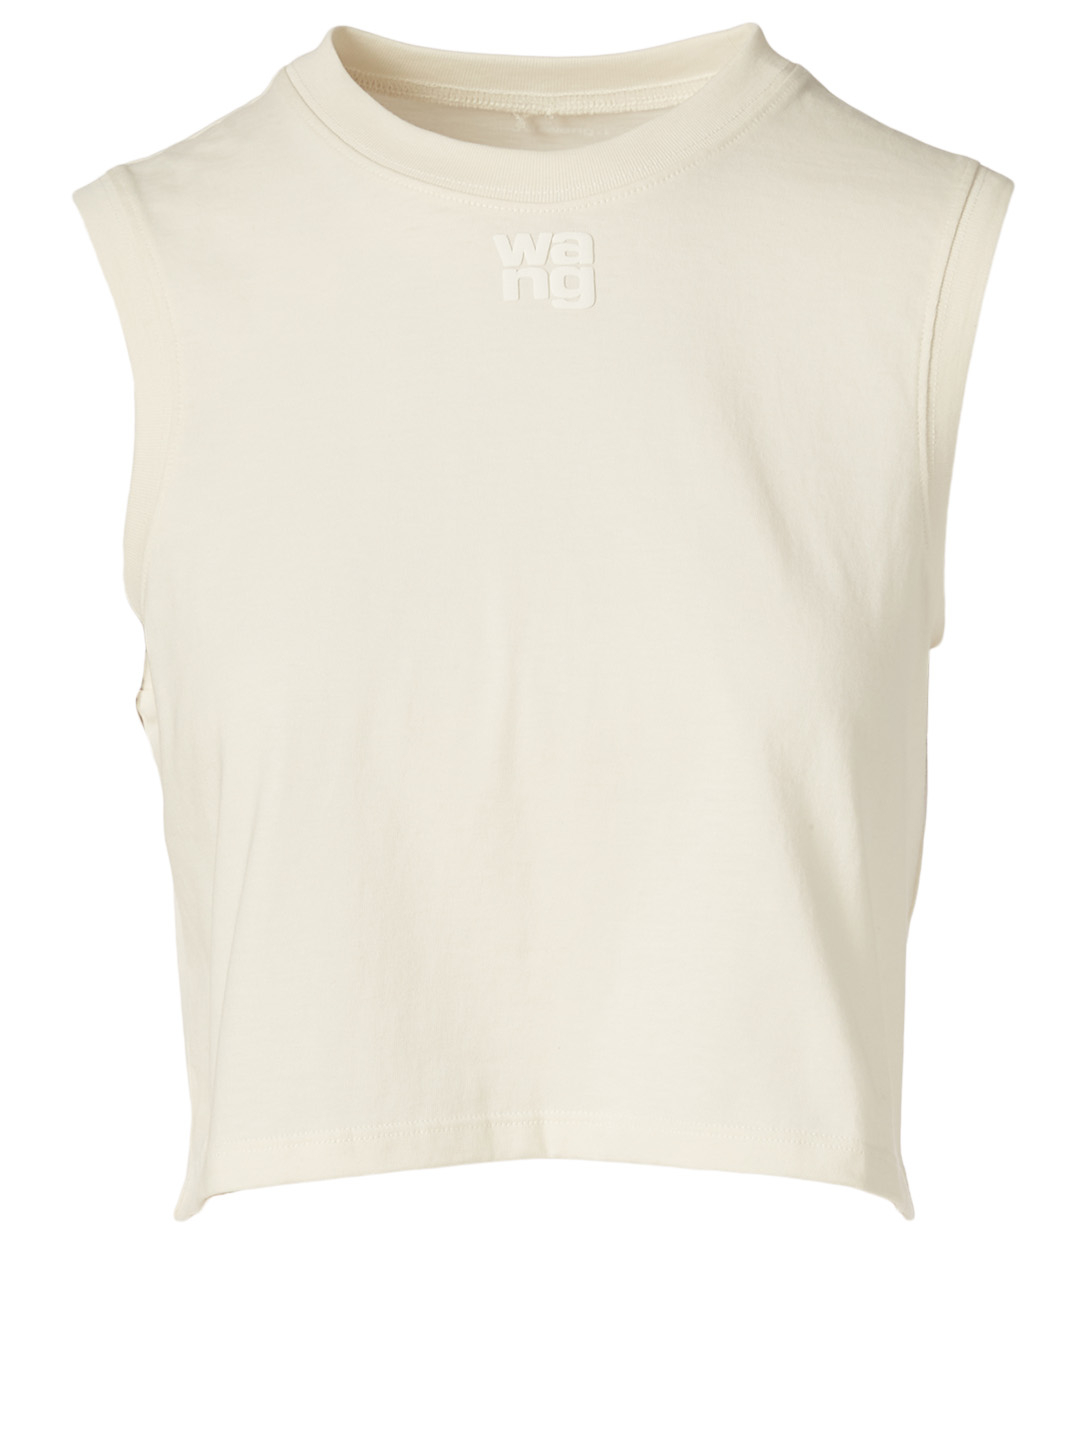 ALEXANDERWANG.T Foundation Jersey Sleeveless Top With Paint Logo Women's White